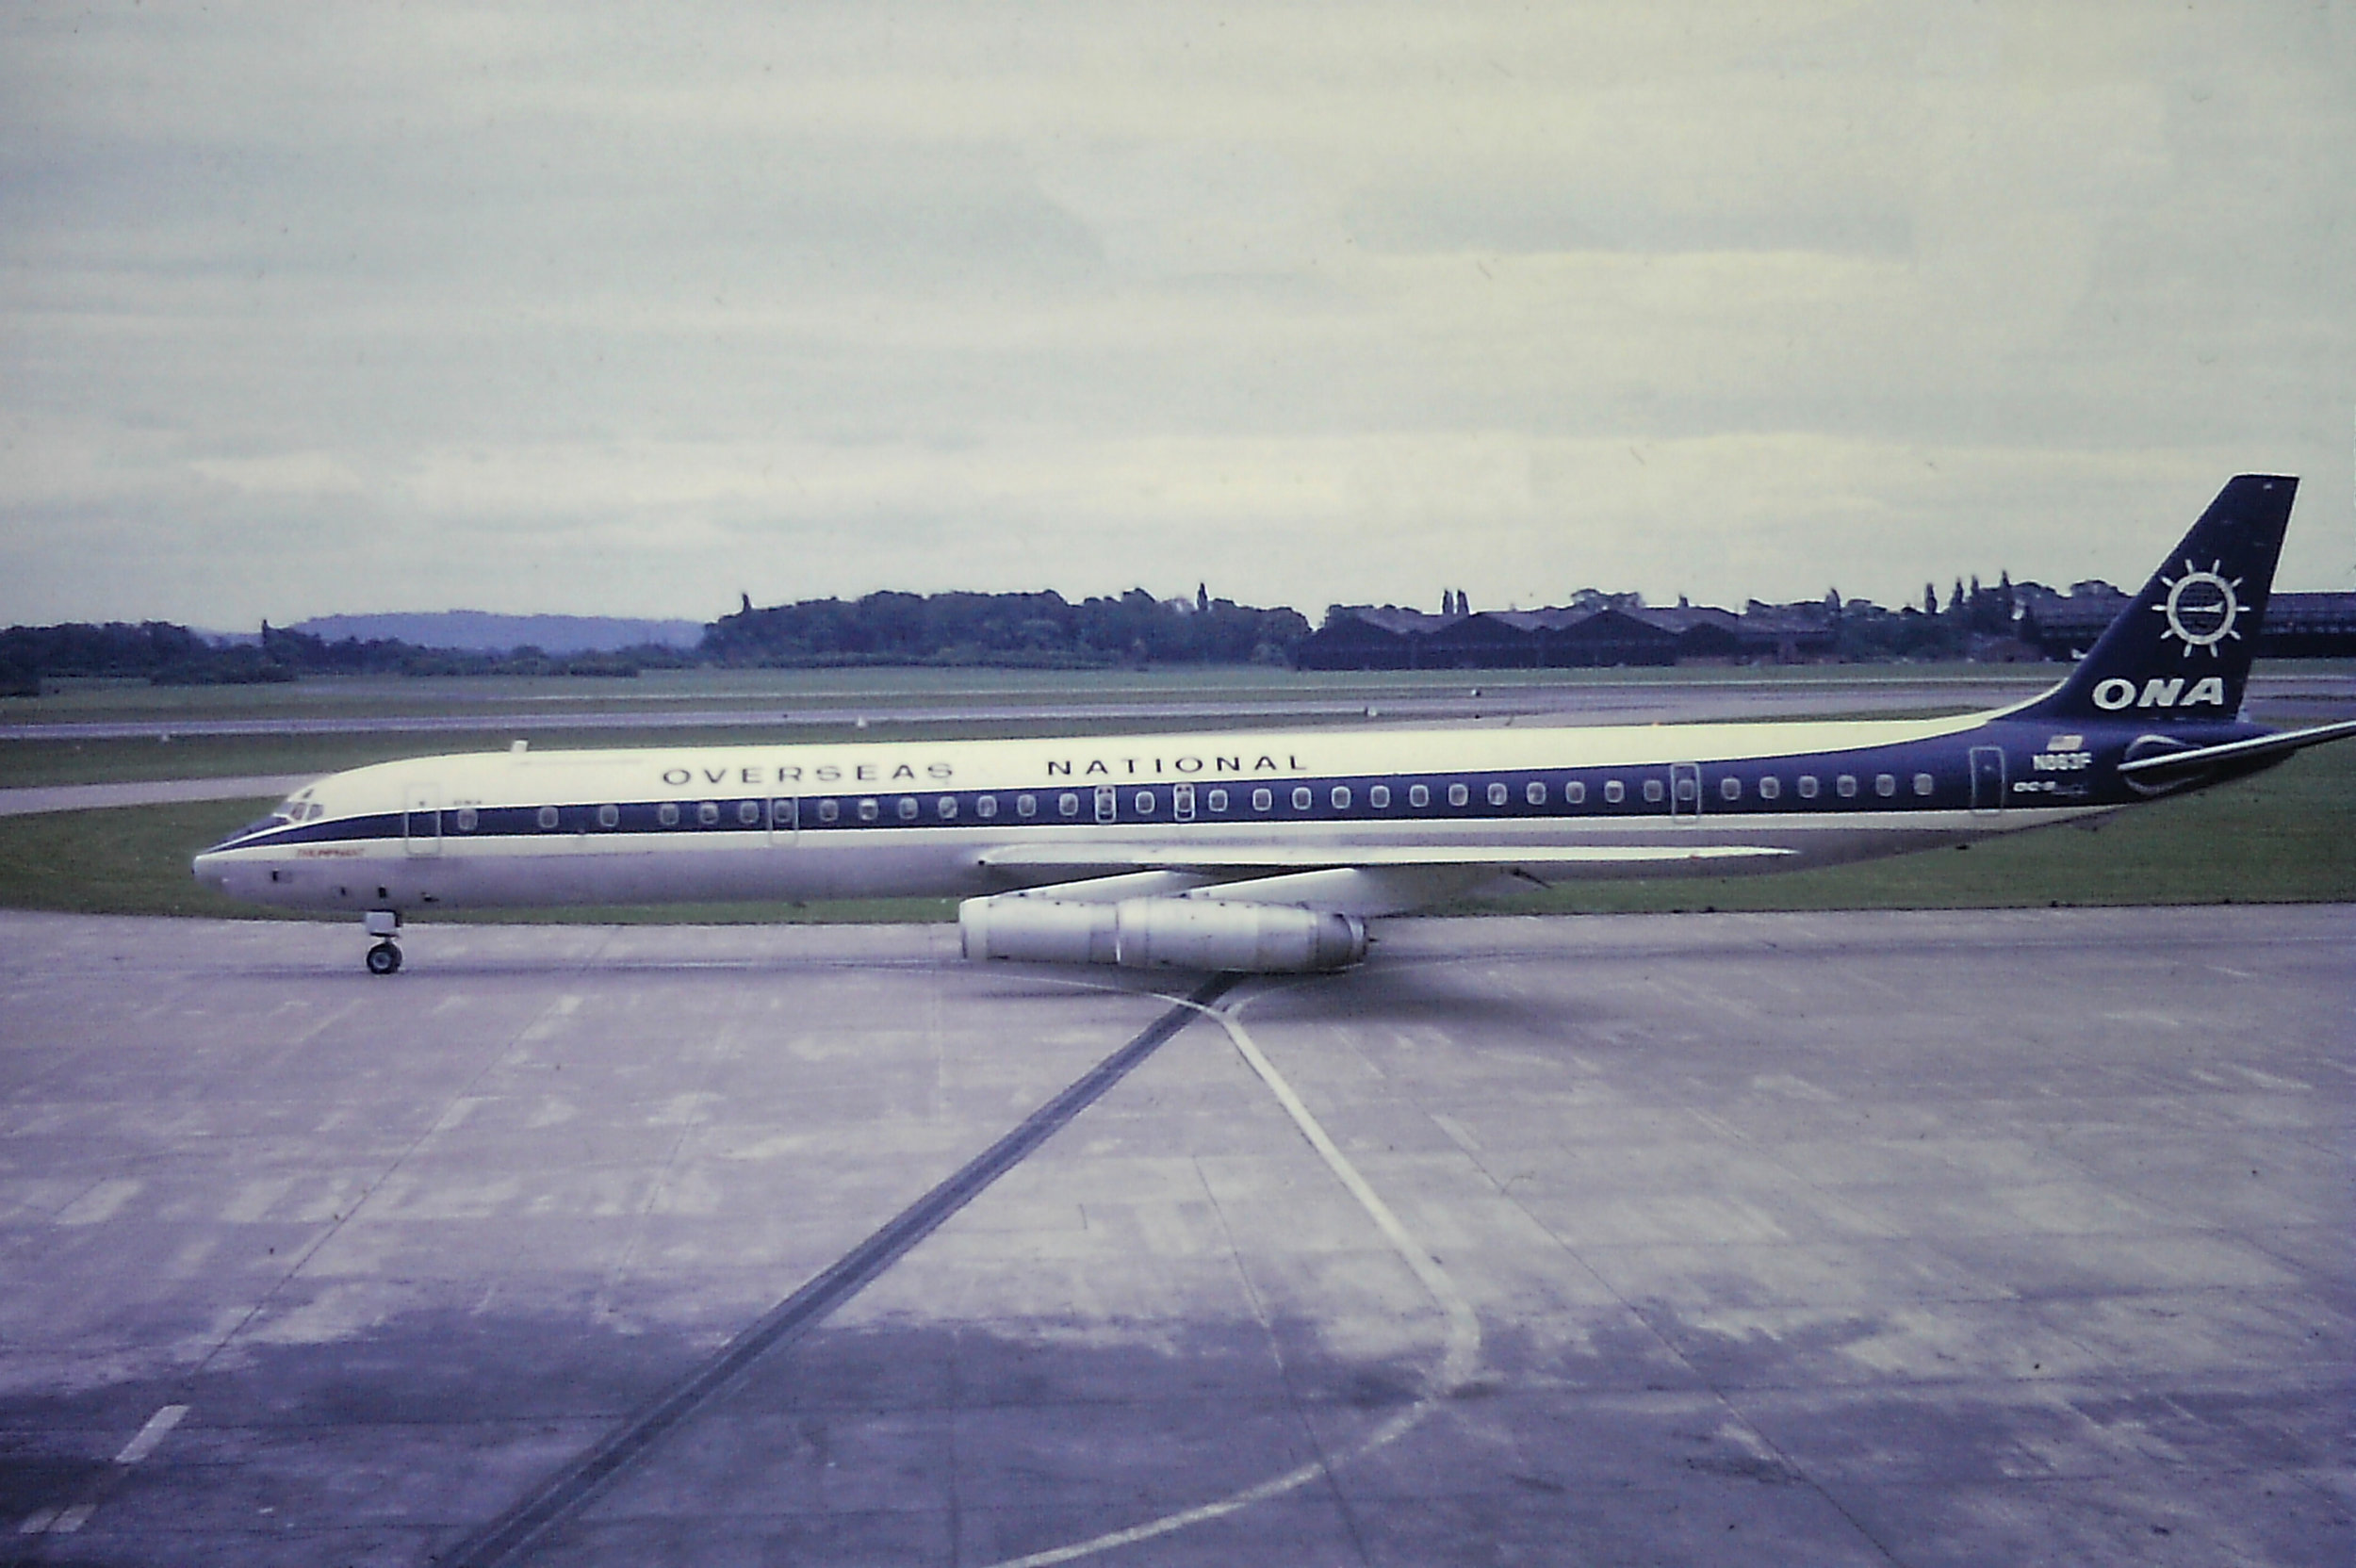 Overseas National were pretty frequent visitors to Manchester during the seventies with their Dc8's. N863F - Dc8-63 was captured taxiing out for a Runway 24 departure by Eric Wright on 31st May 1970 The aircraft on this -occasion was routing Frankfurt - Manchester - Mexico City